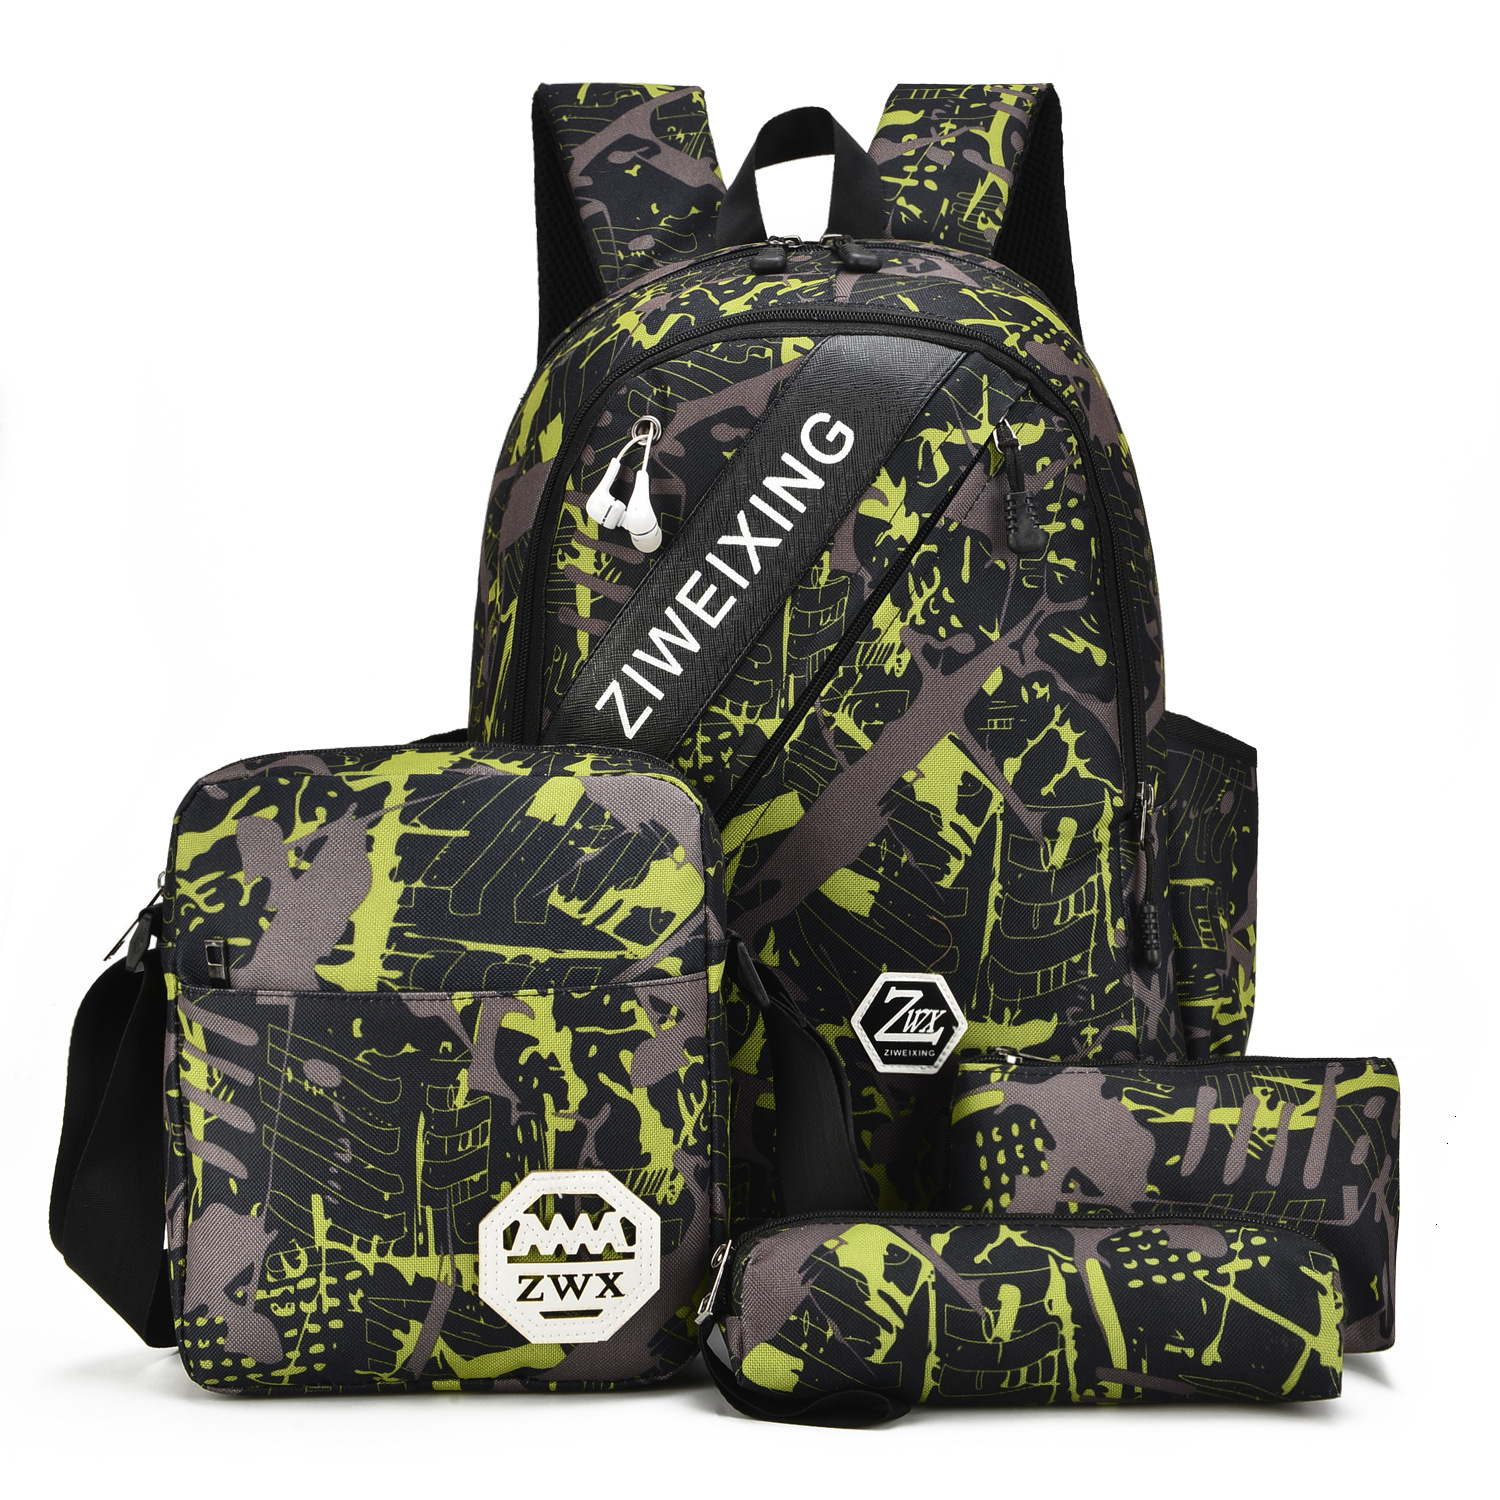 Fashion Camouflage Boys School Bags 5pcs Capacity Backpack For Teenagers Student Blue And Red Book Bag Men School Backpack Women